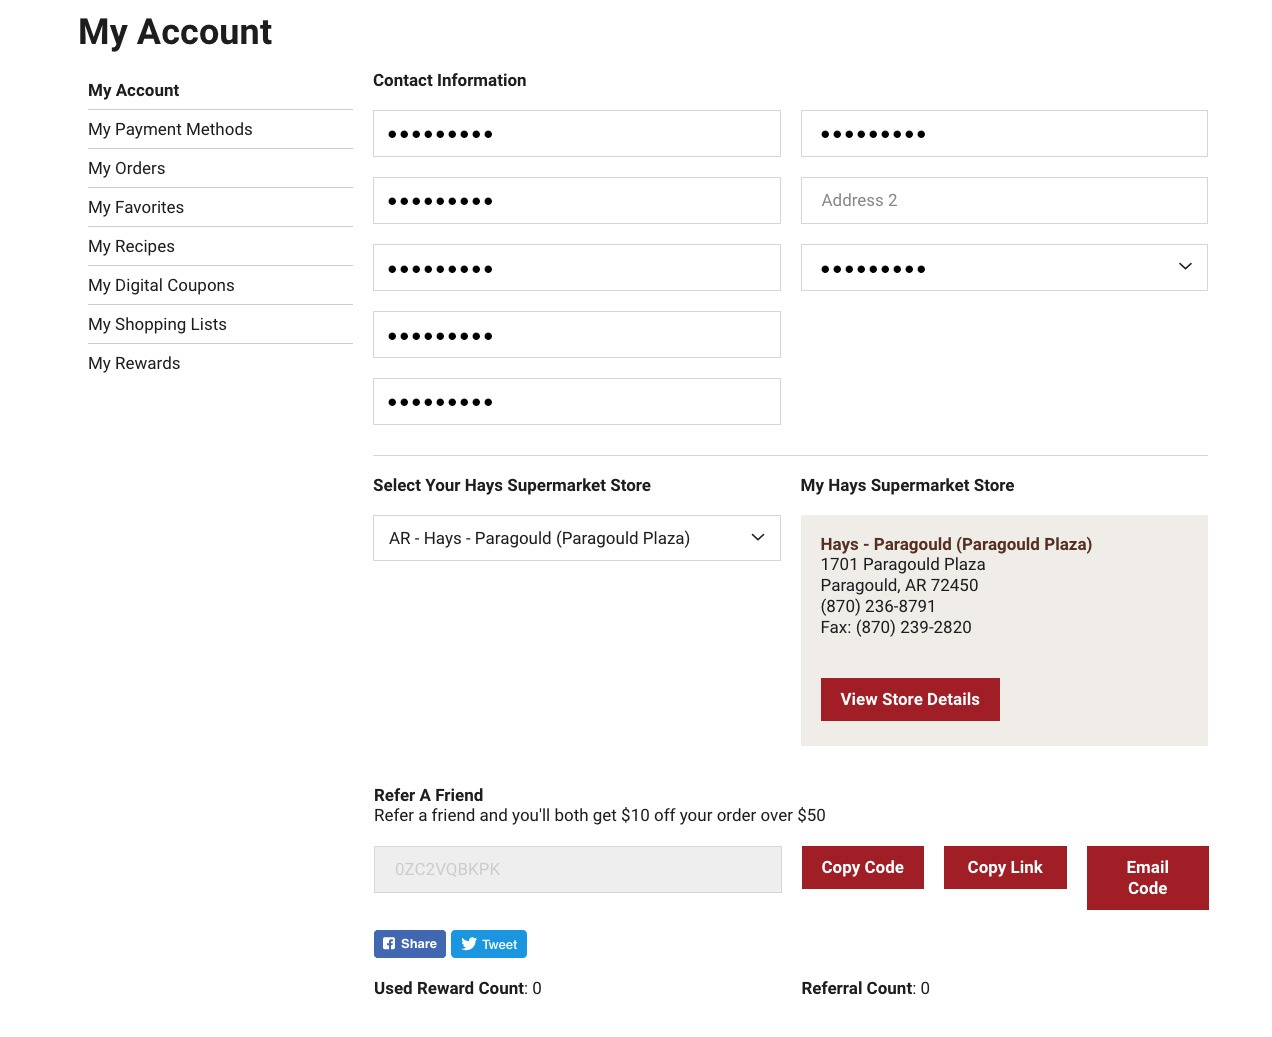 """Screenshot of """"My Account"""" Page."""